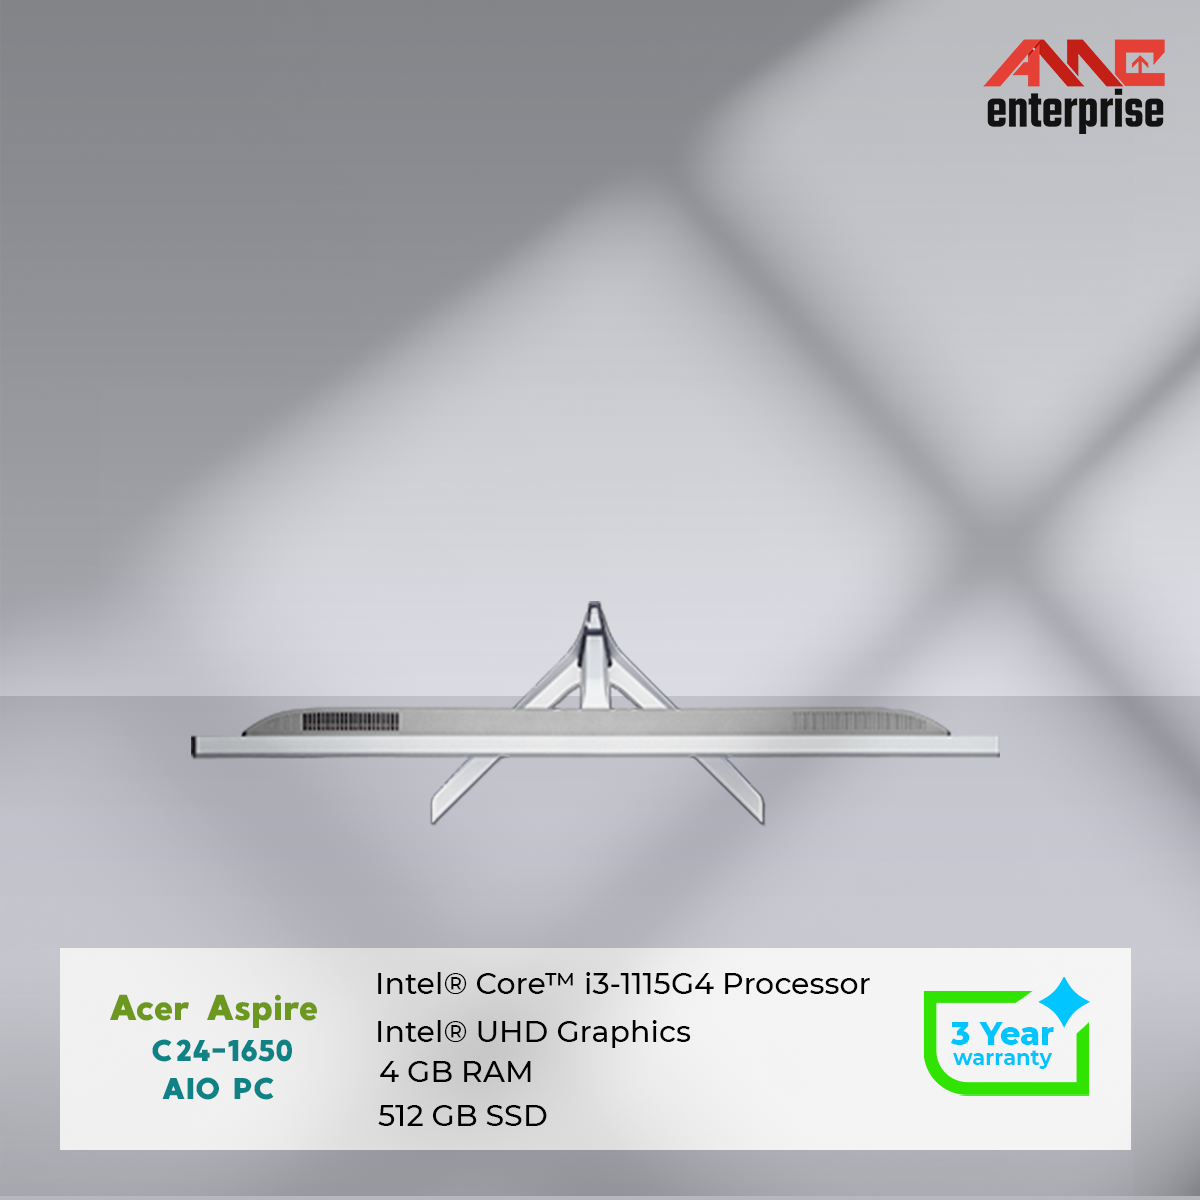 ACER Aspire C24-1650 ALL-IN-ONE PC (5).png